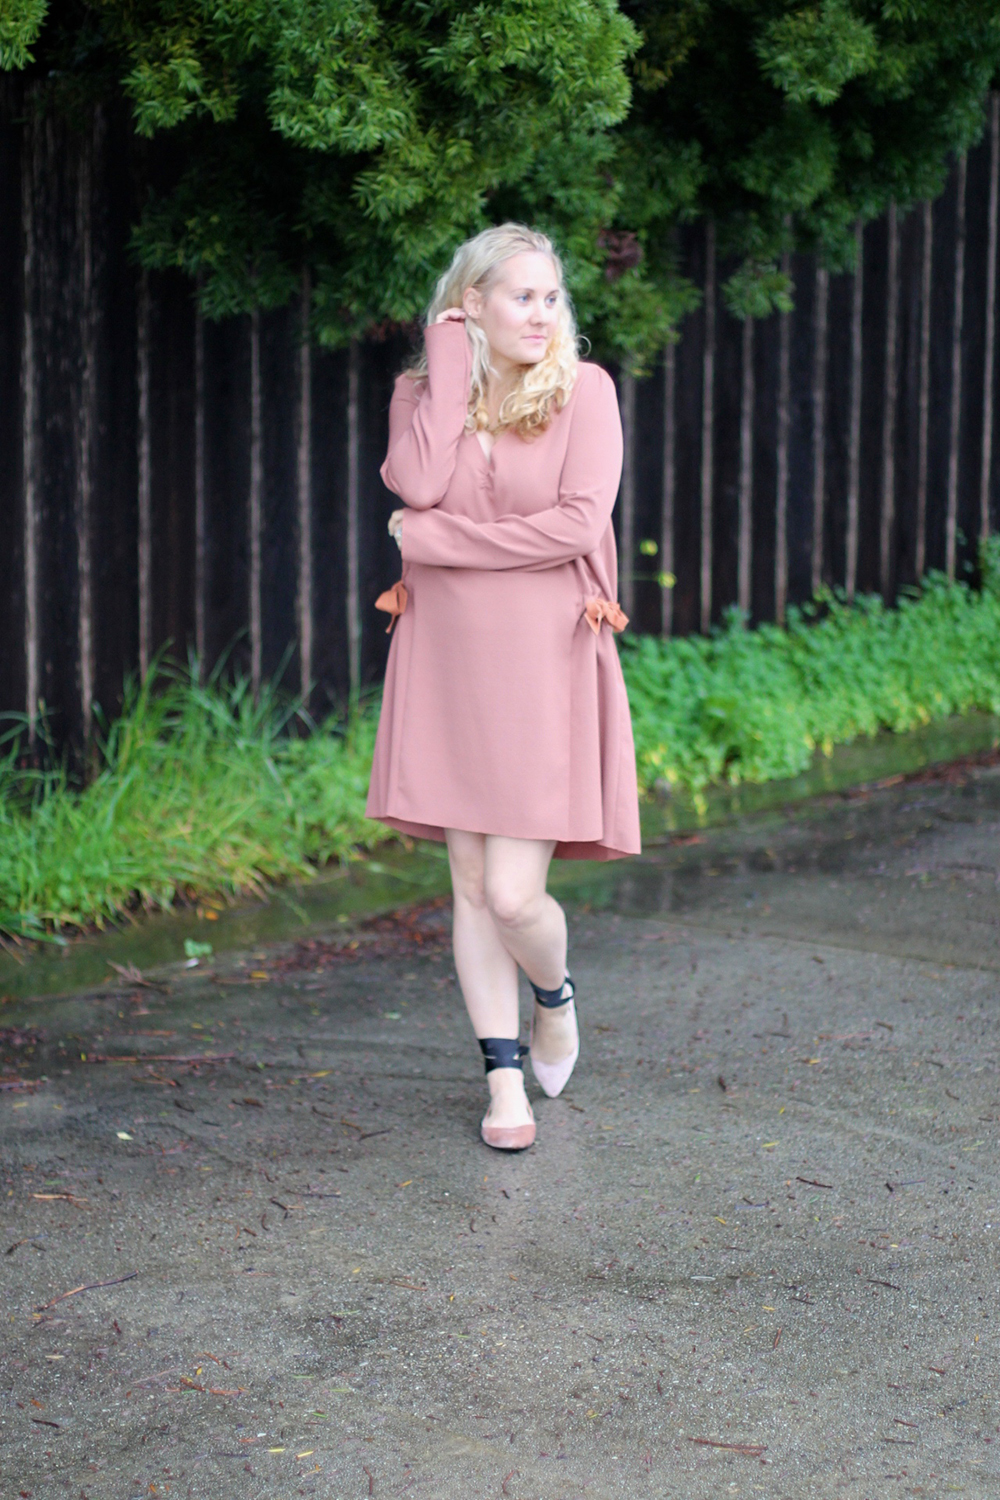 Dusty Pink Dress-See by Chloe-Valentines Day Outfit-Outfit Inspiration-Ankle Tie Flats-Have Need Want 9